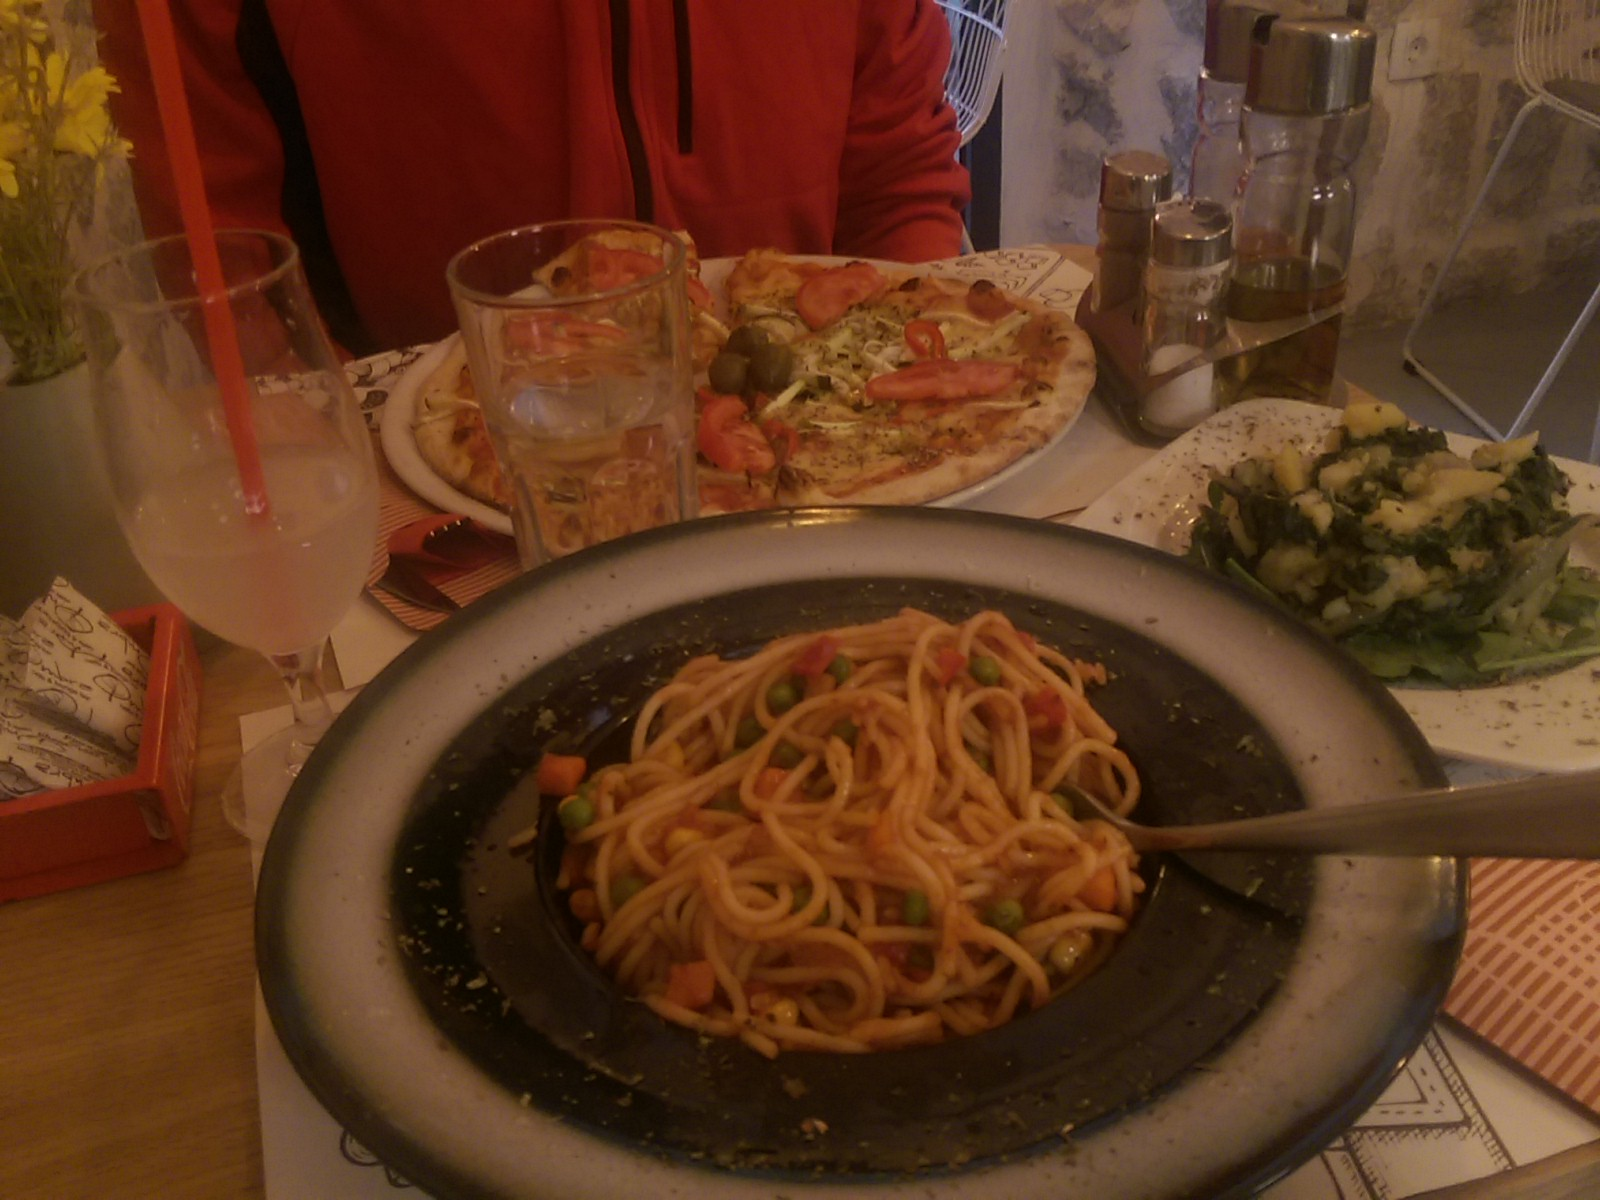 A table full of dishes, including spaghetti in the foreground, a wine glass with lemon juice, potatoes and chard on a plate, and at the far end a pizza